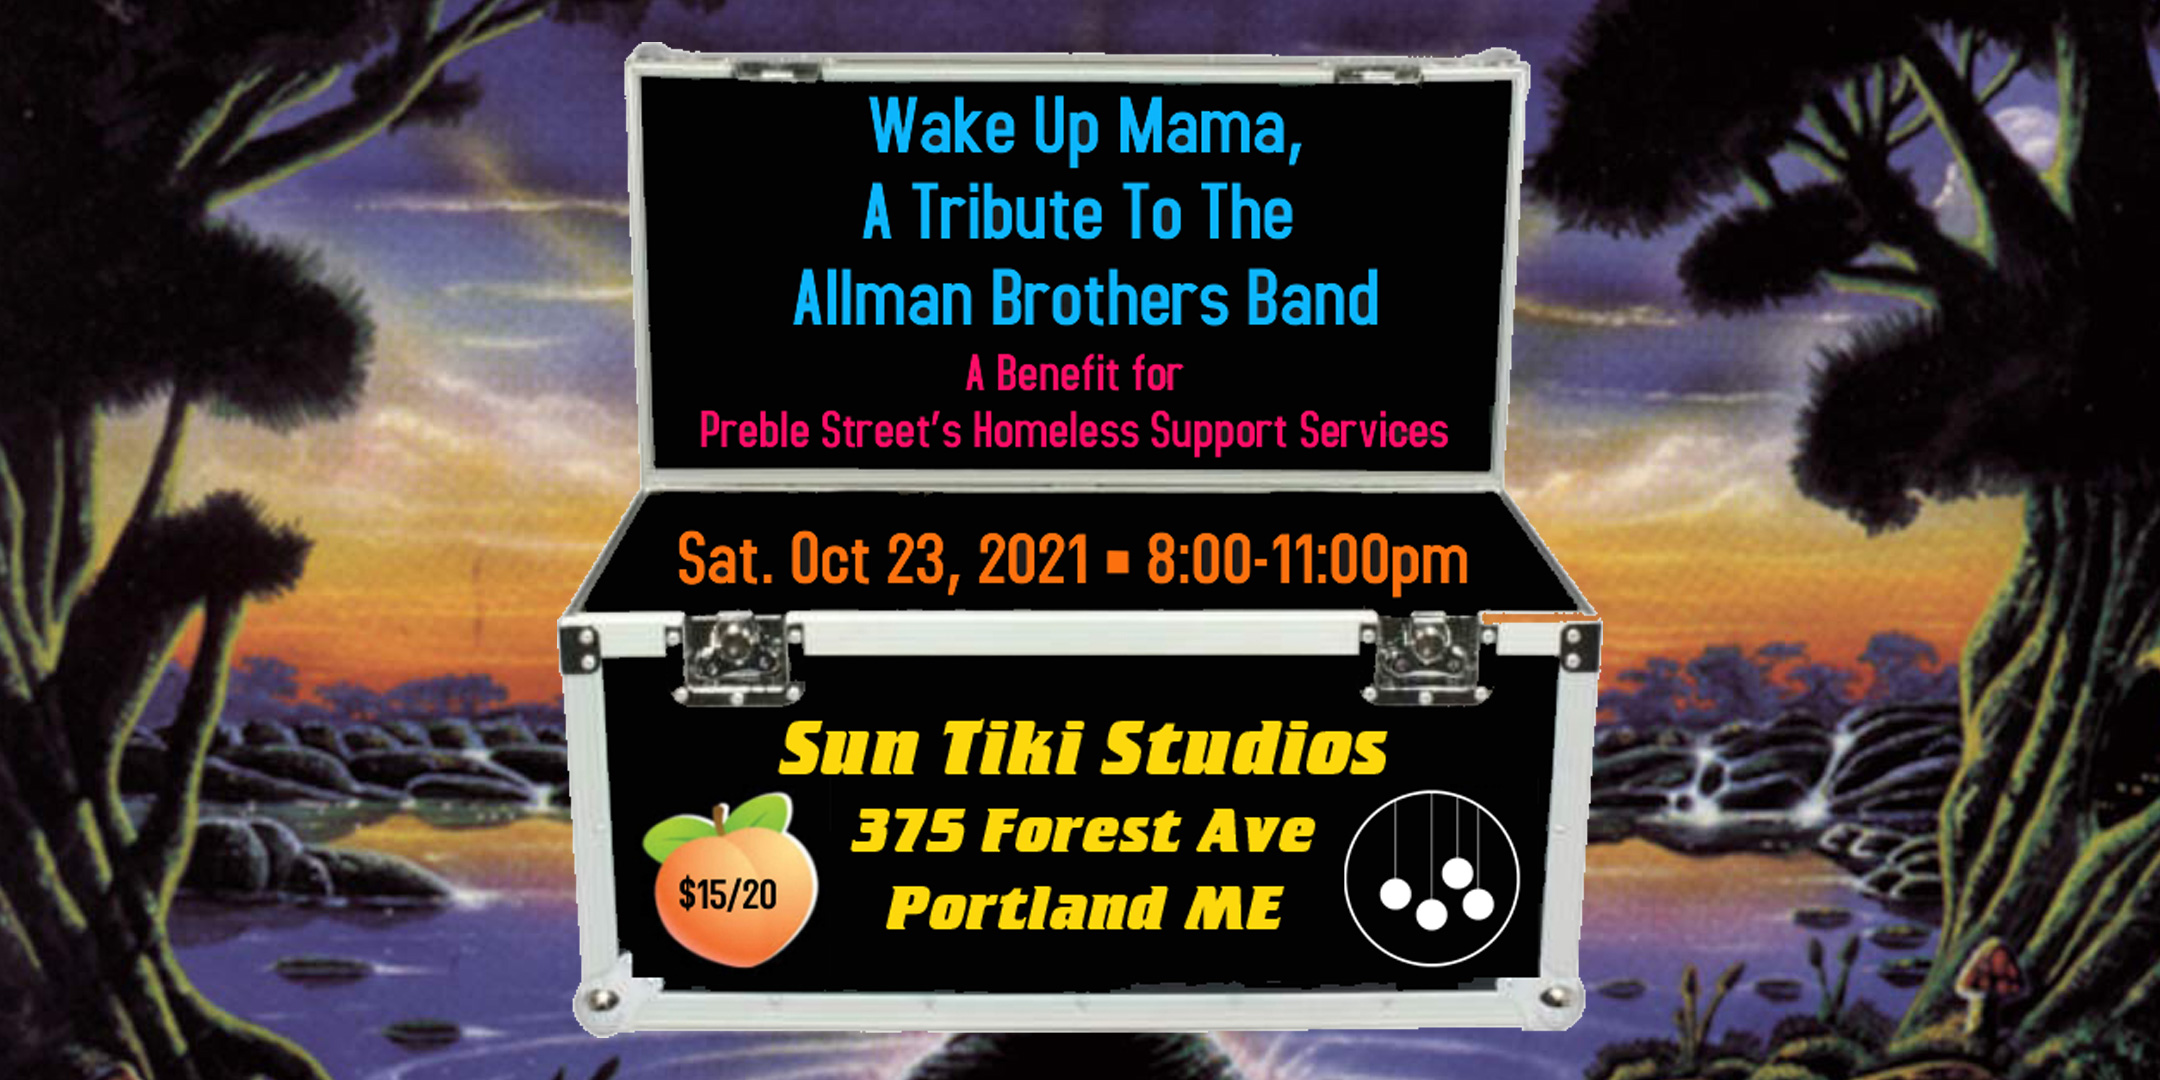 Wake Up Mama: A Tribute to the Allman Brothers Band